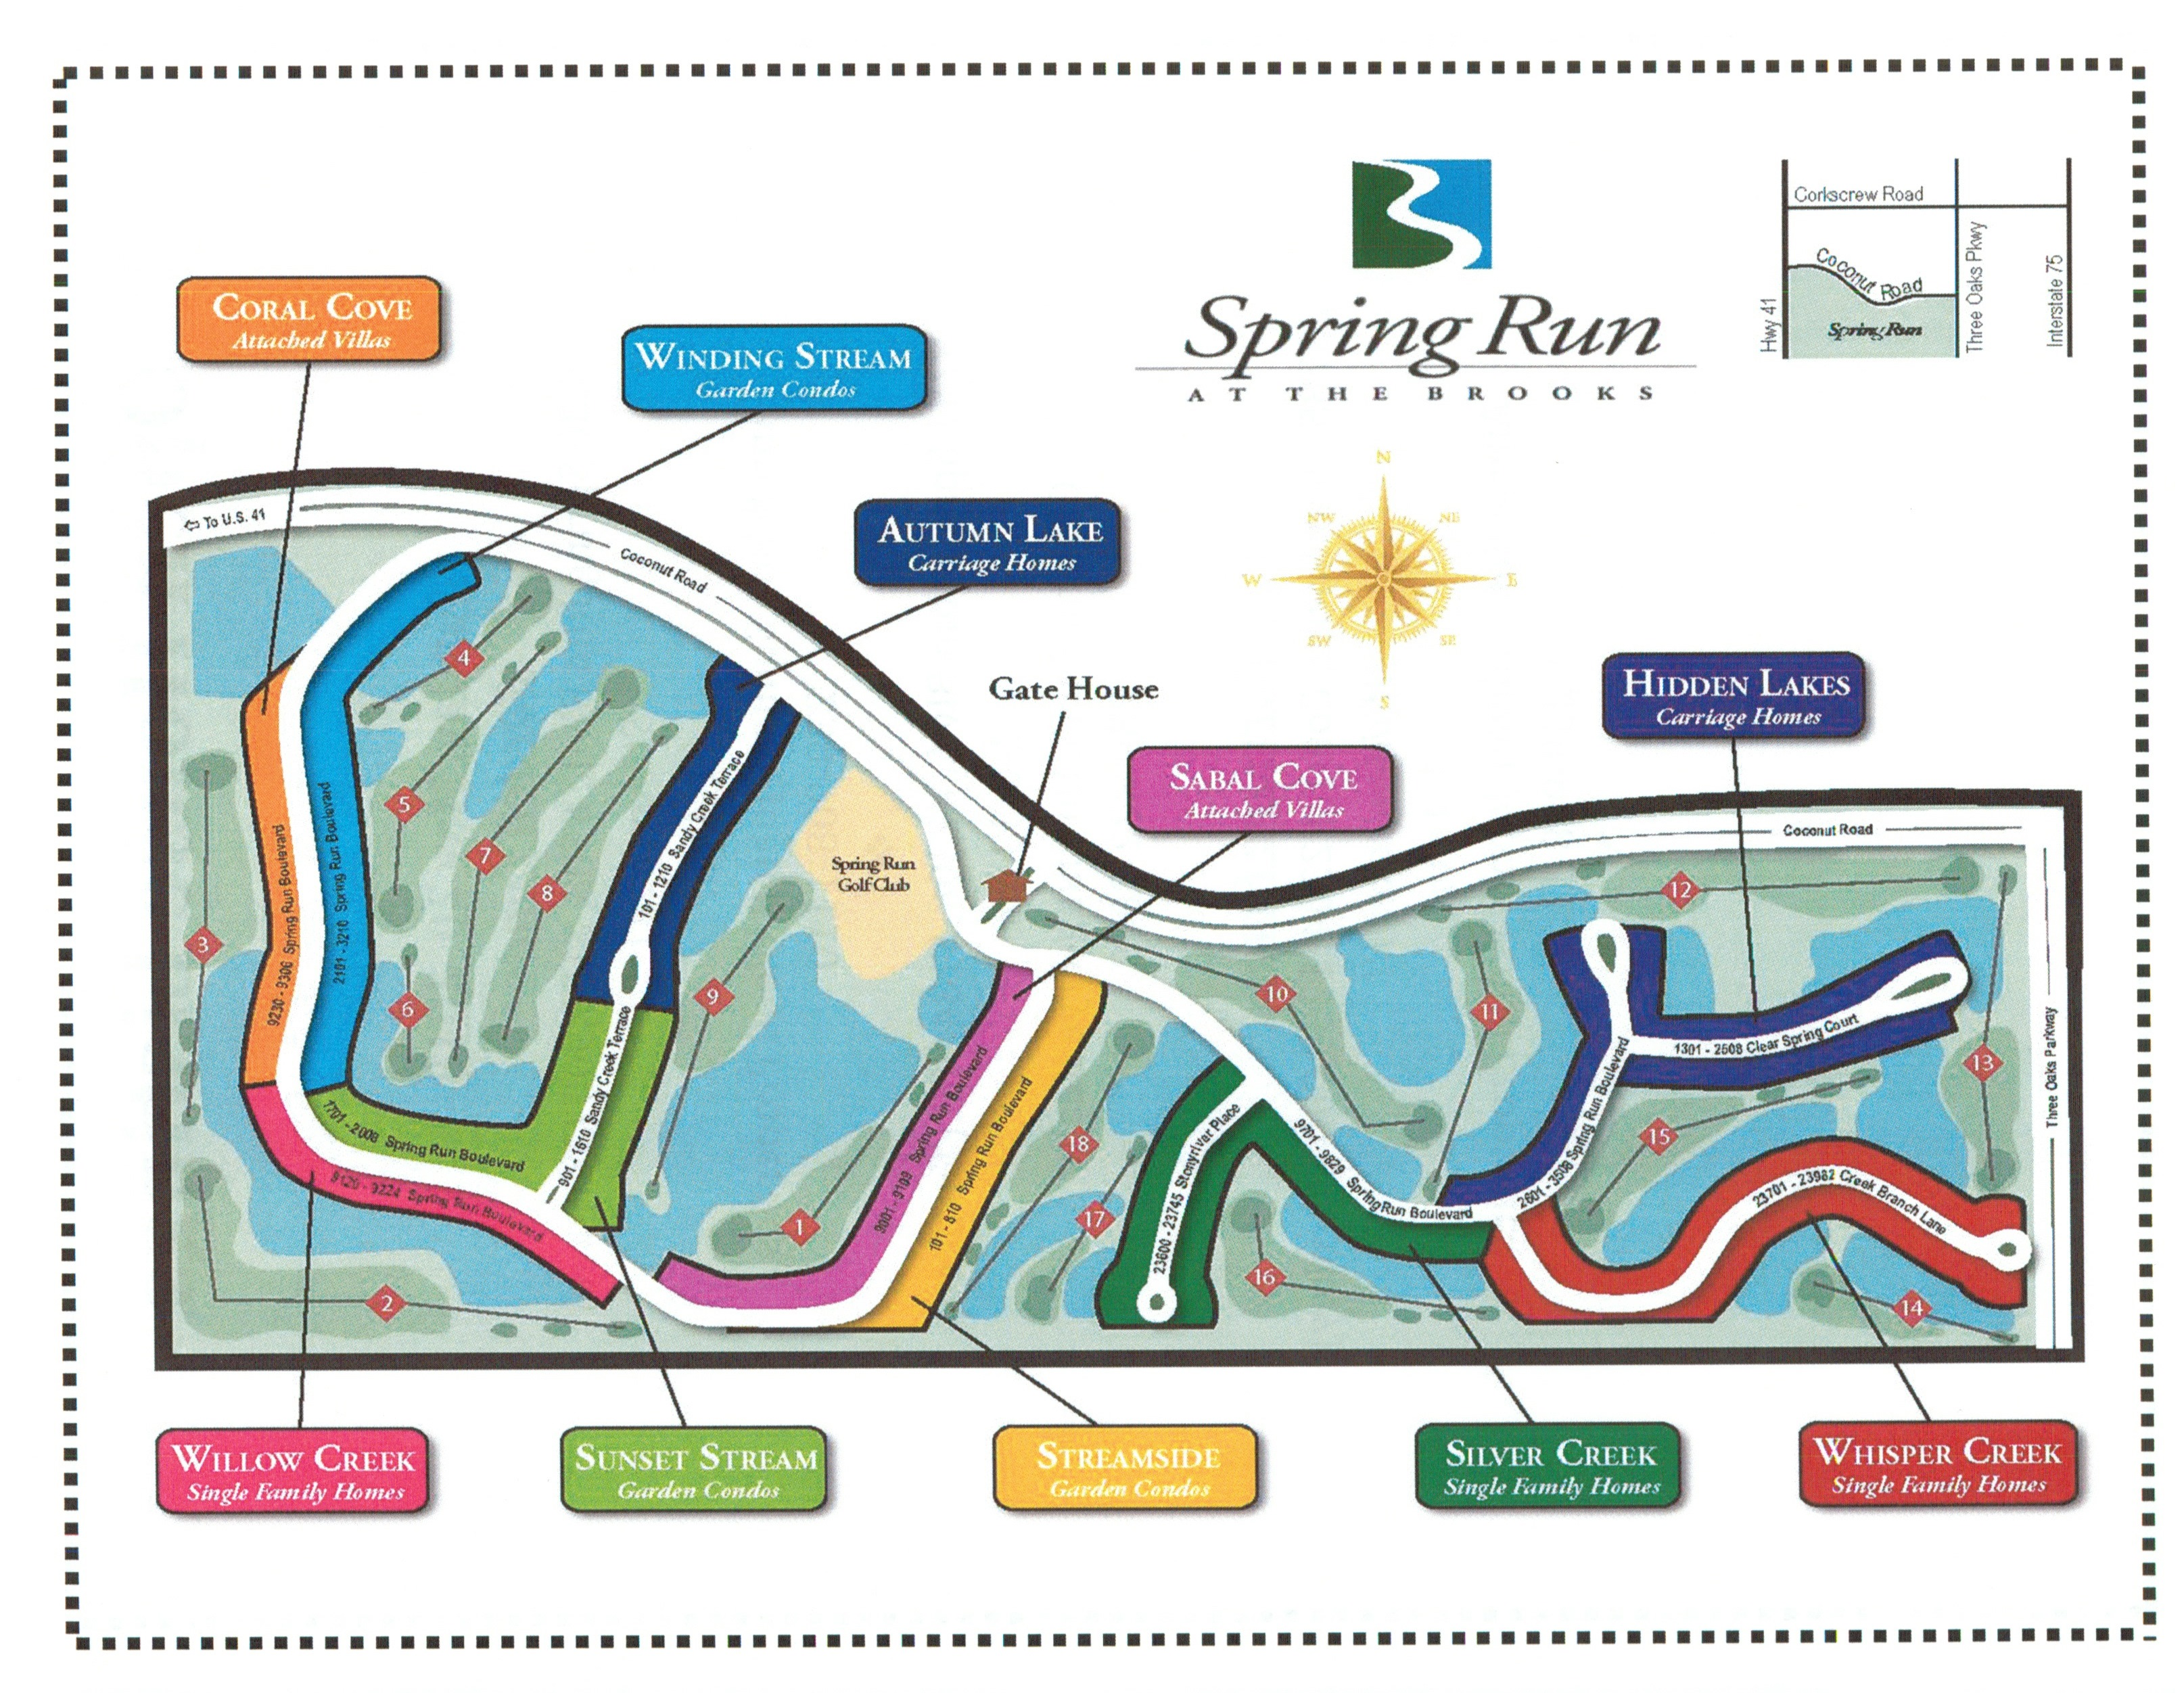 Spring Run Golf Course Map